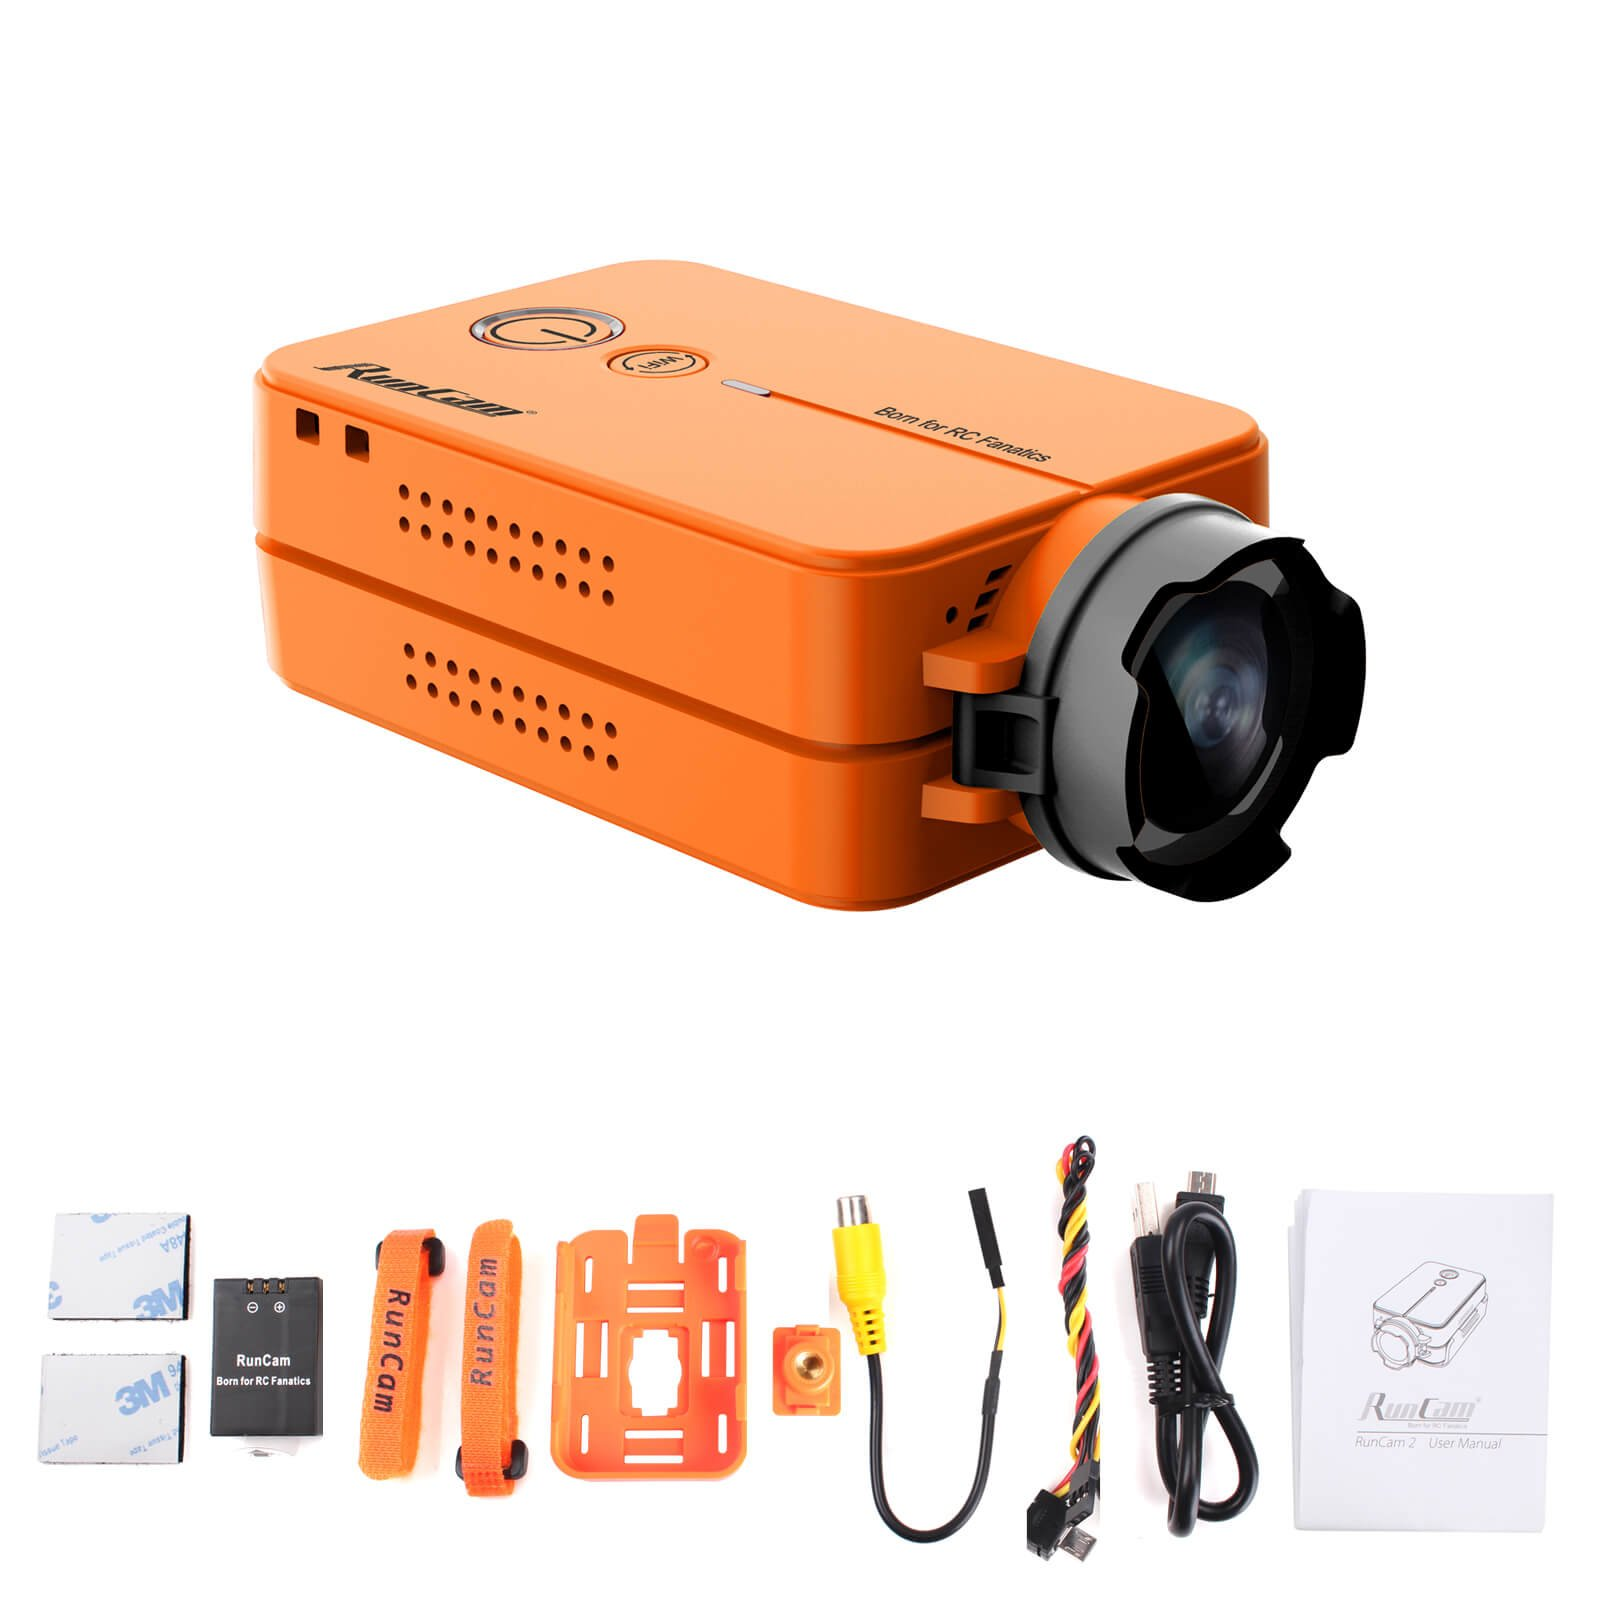 Runcam Camera FPV Drone And Remote Control Camcorder, Orange